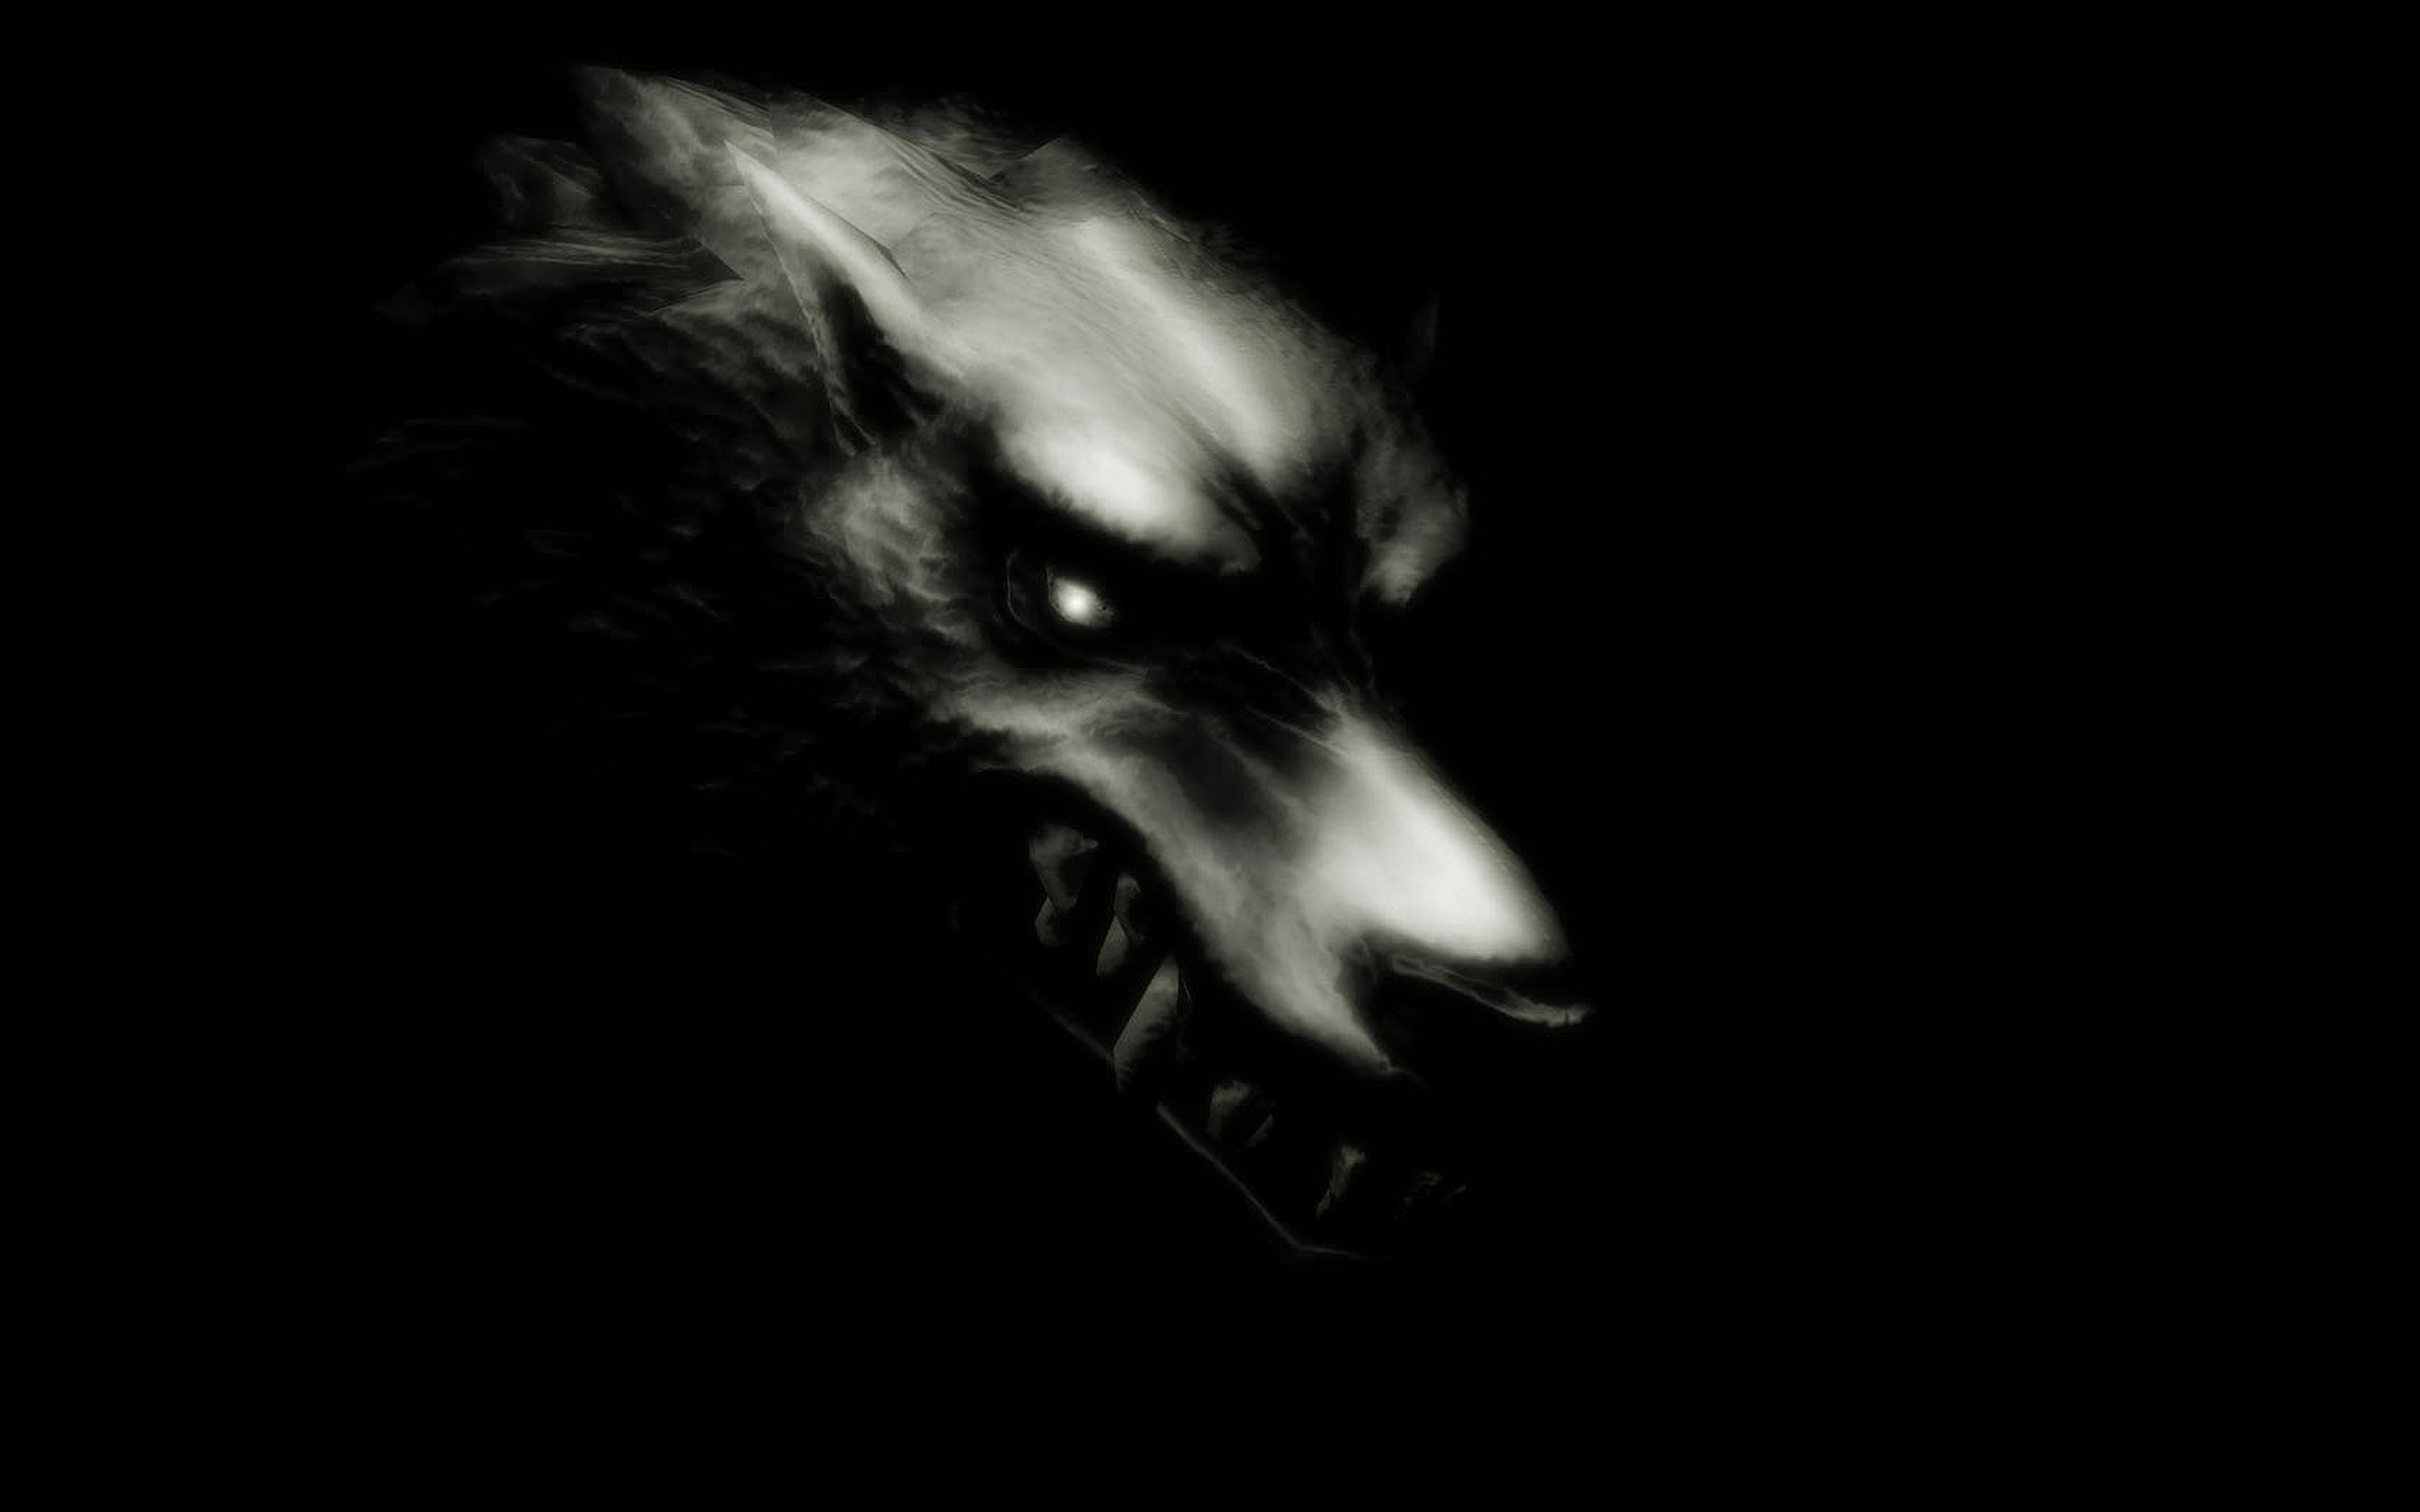 2560x1600 Dark - Werewolf Wallpapers and 144 Werewolf Wallpapers | Werewolf  Backgrounds Page 4